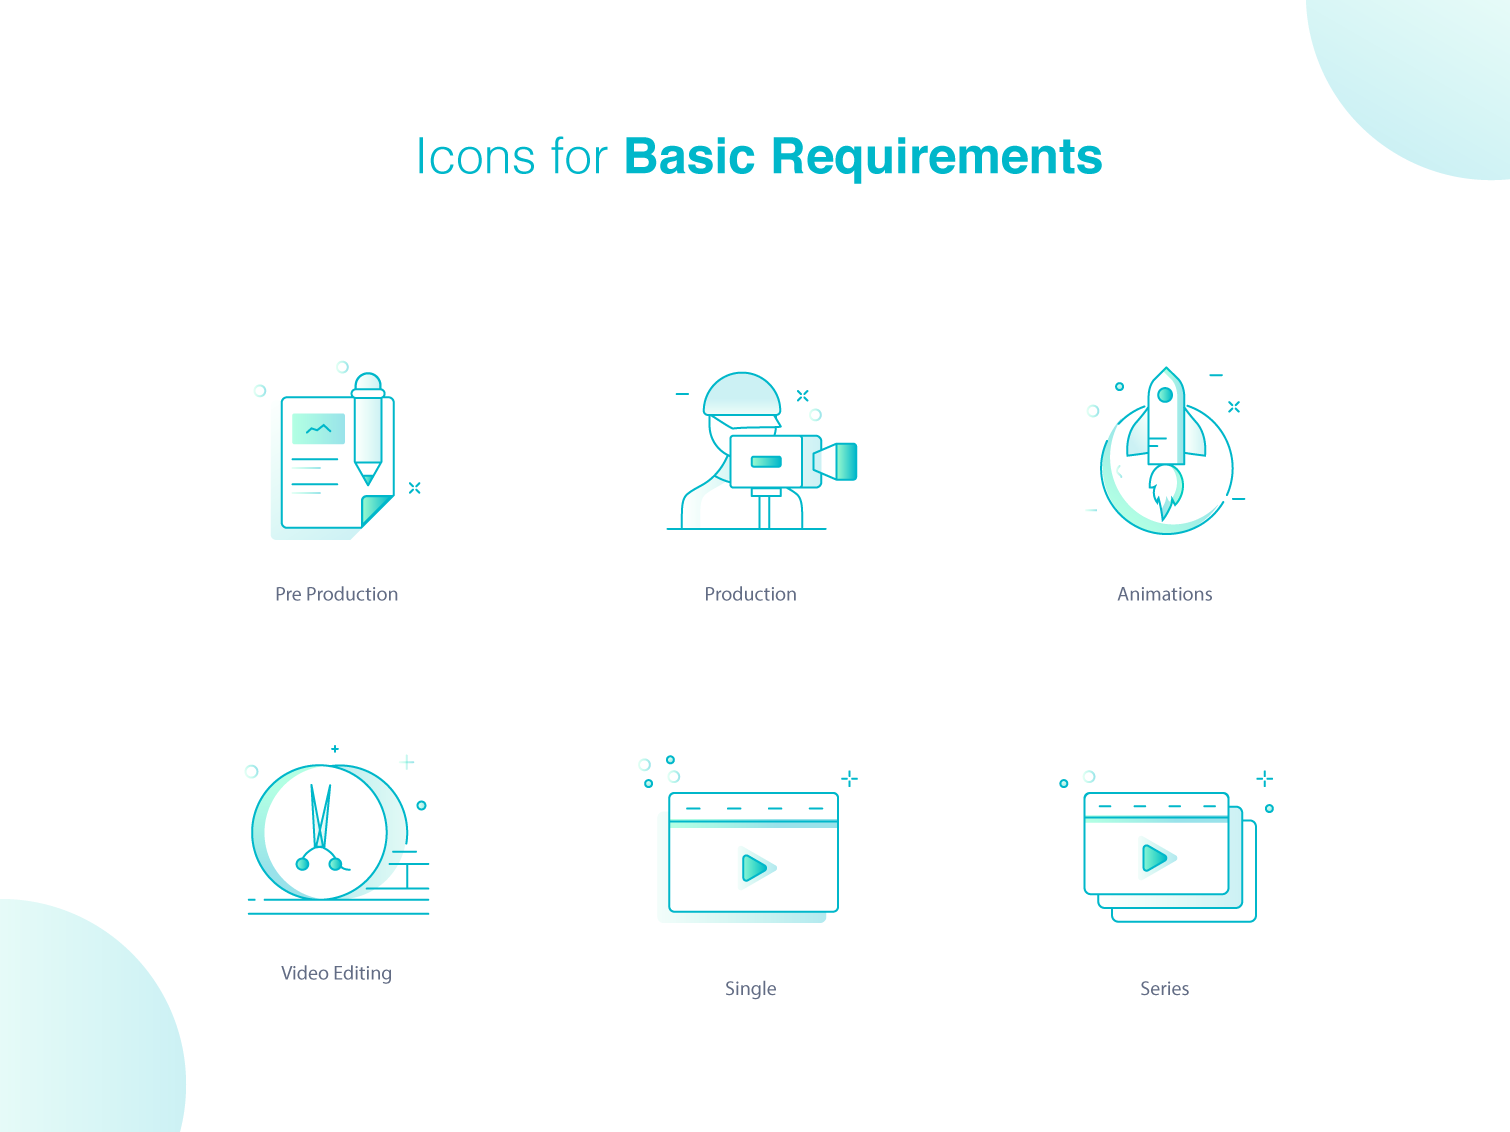 Icons for saas marketplace. 2 icon artwork line icons icon bundle basic icon video editing animation icon video production ico video icon illustration line icon gradient icon